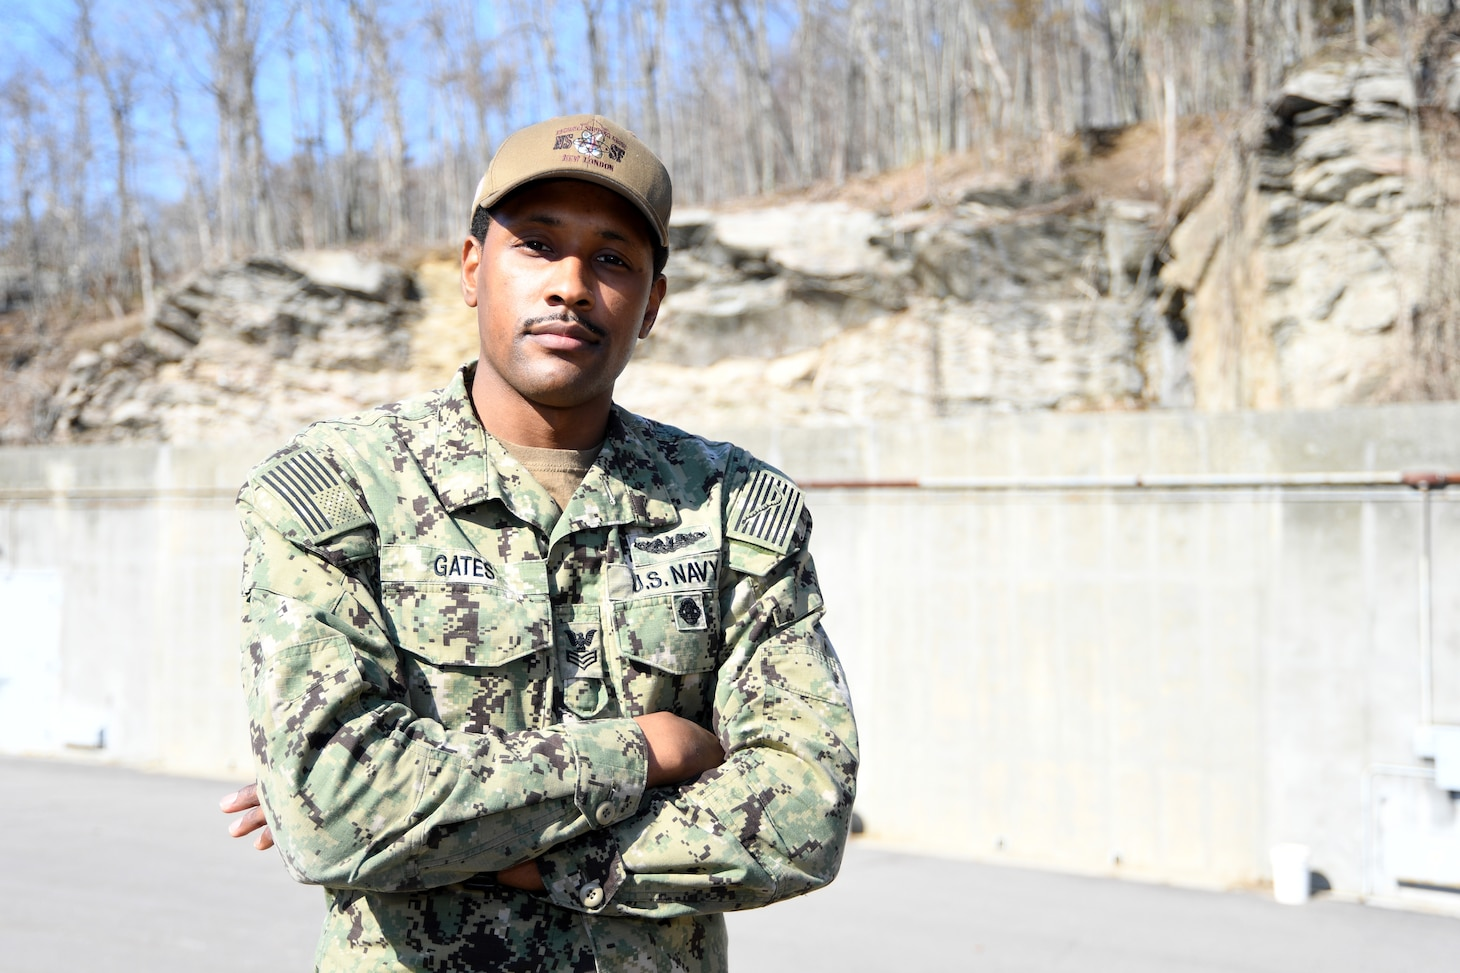 Torpedoman's Mate 1st Class Raymond Gates, assigned to Naval Submarine Support Facility, Regional Support Group, poses for a photo at Naval Submarine Base New London in Groton, Conn.